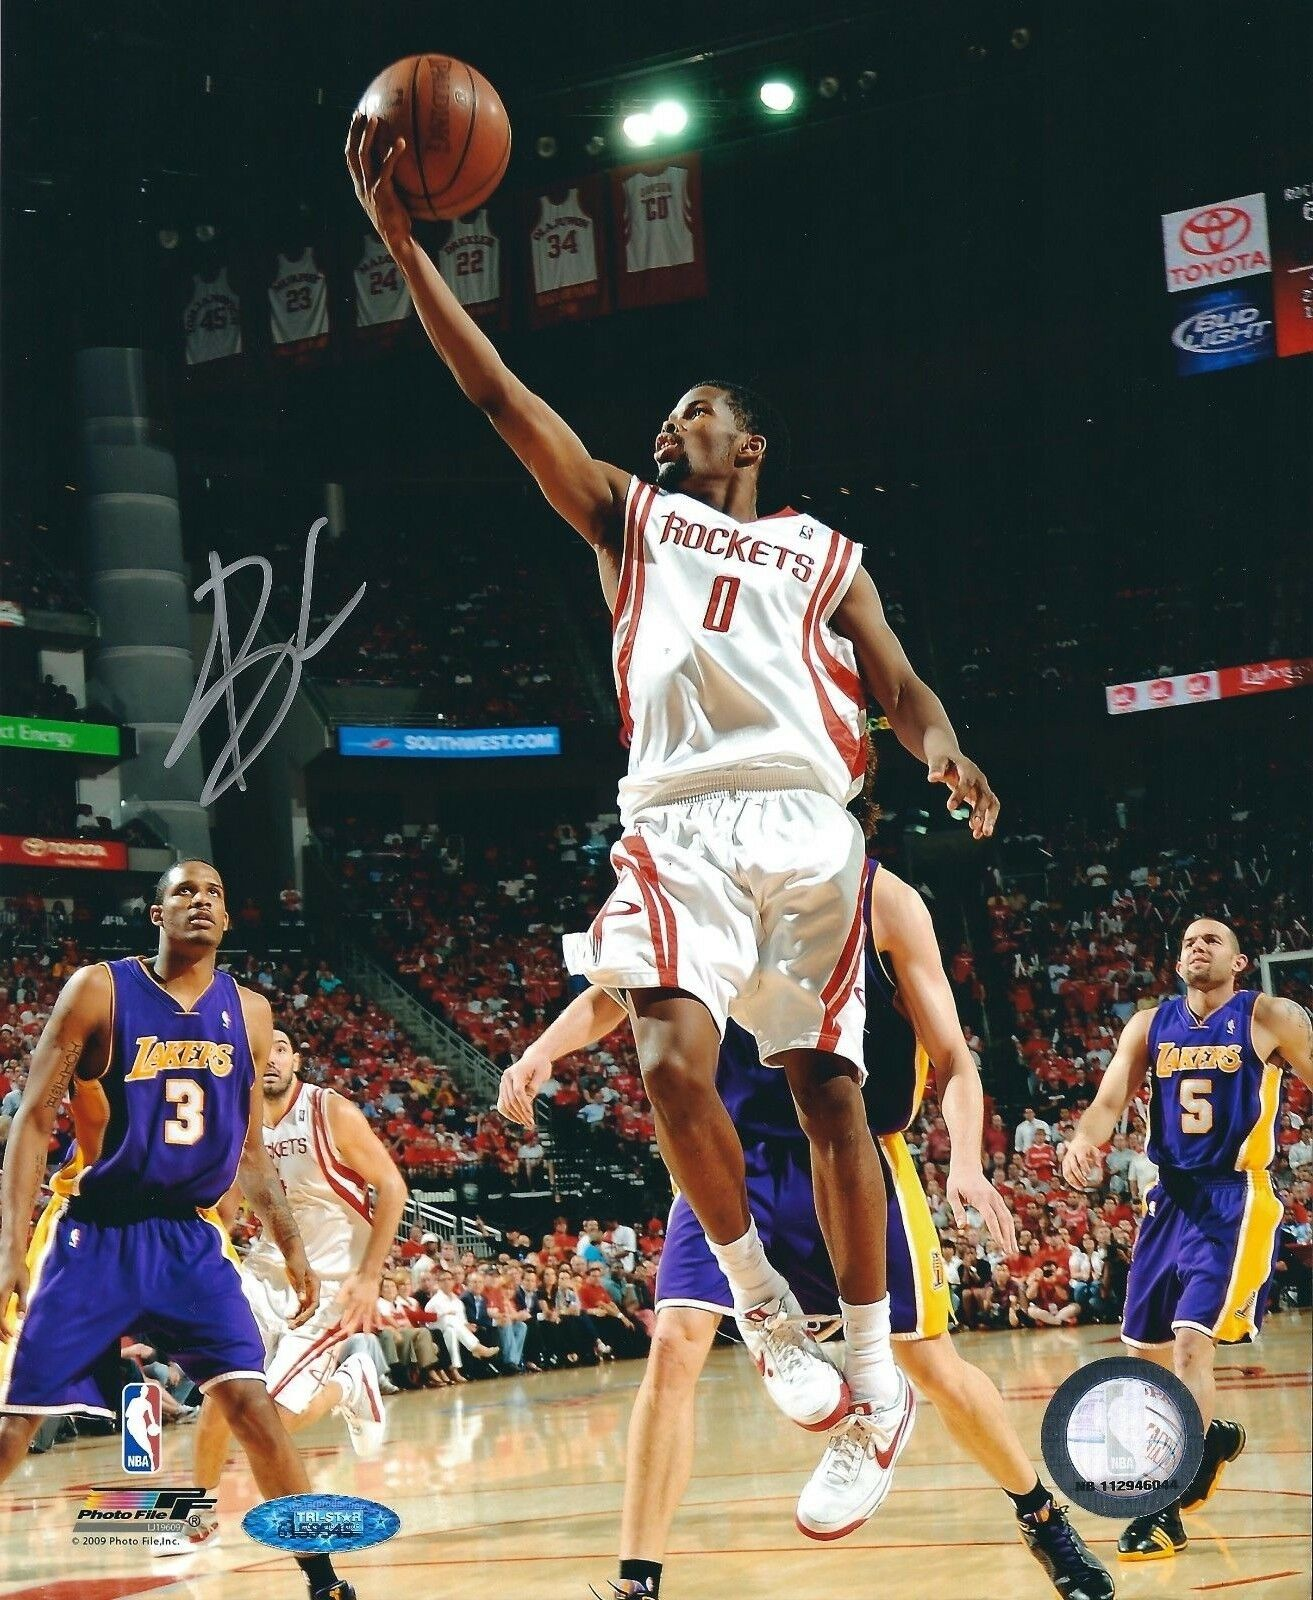 Aaron Brooks Signed Houston Rockets Basketball 8x10 Photo Tri-Star 6159545